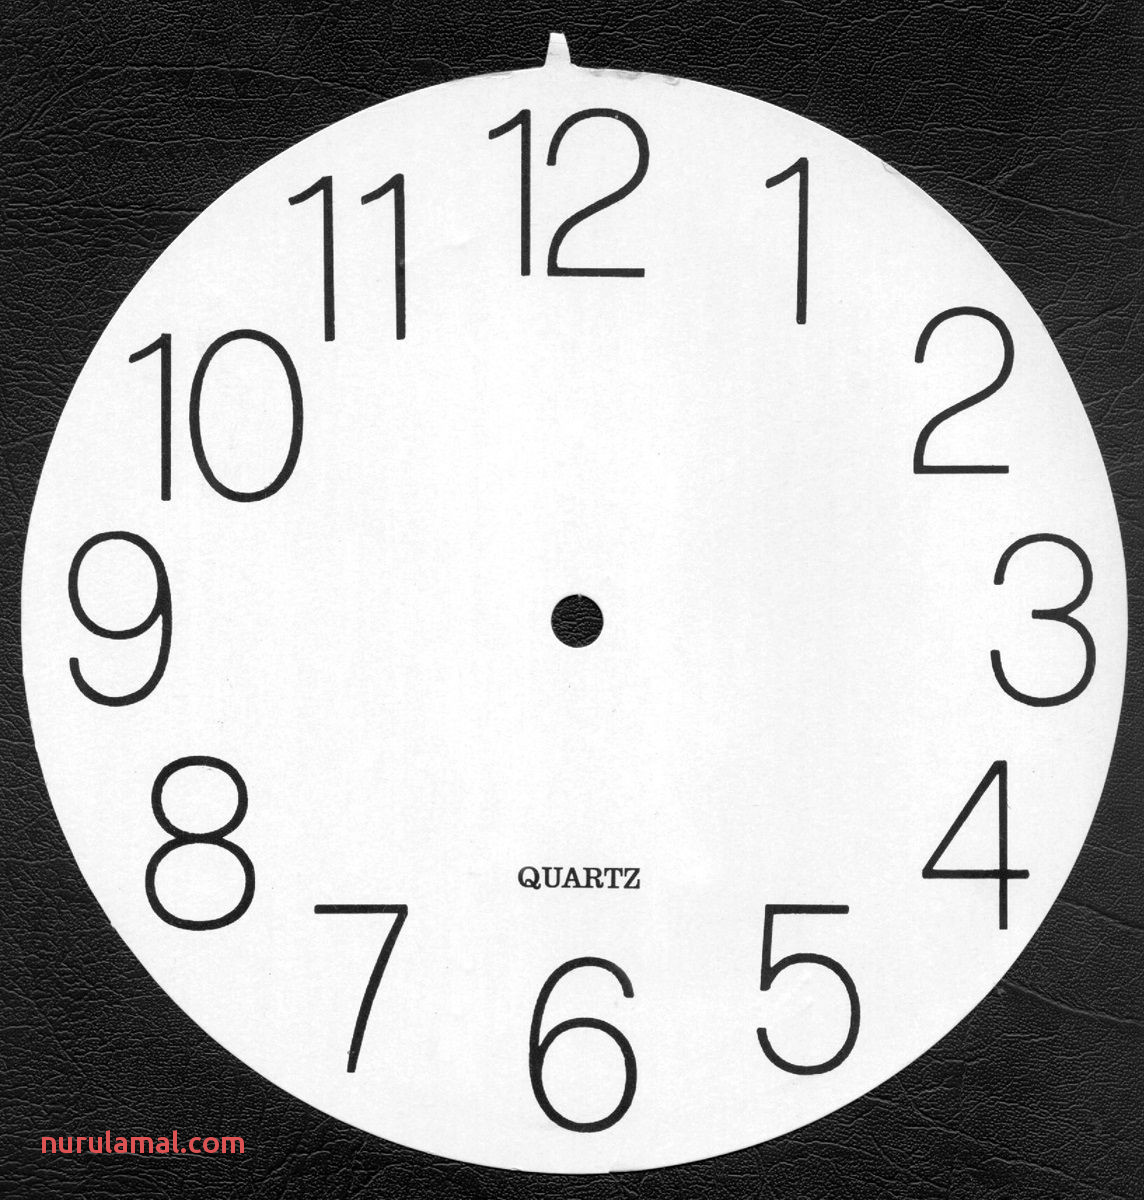 Clock Face Image Printable to Learn Telling Time – Blank